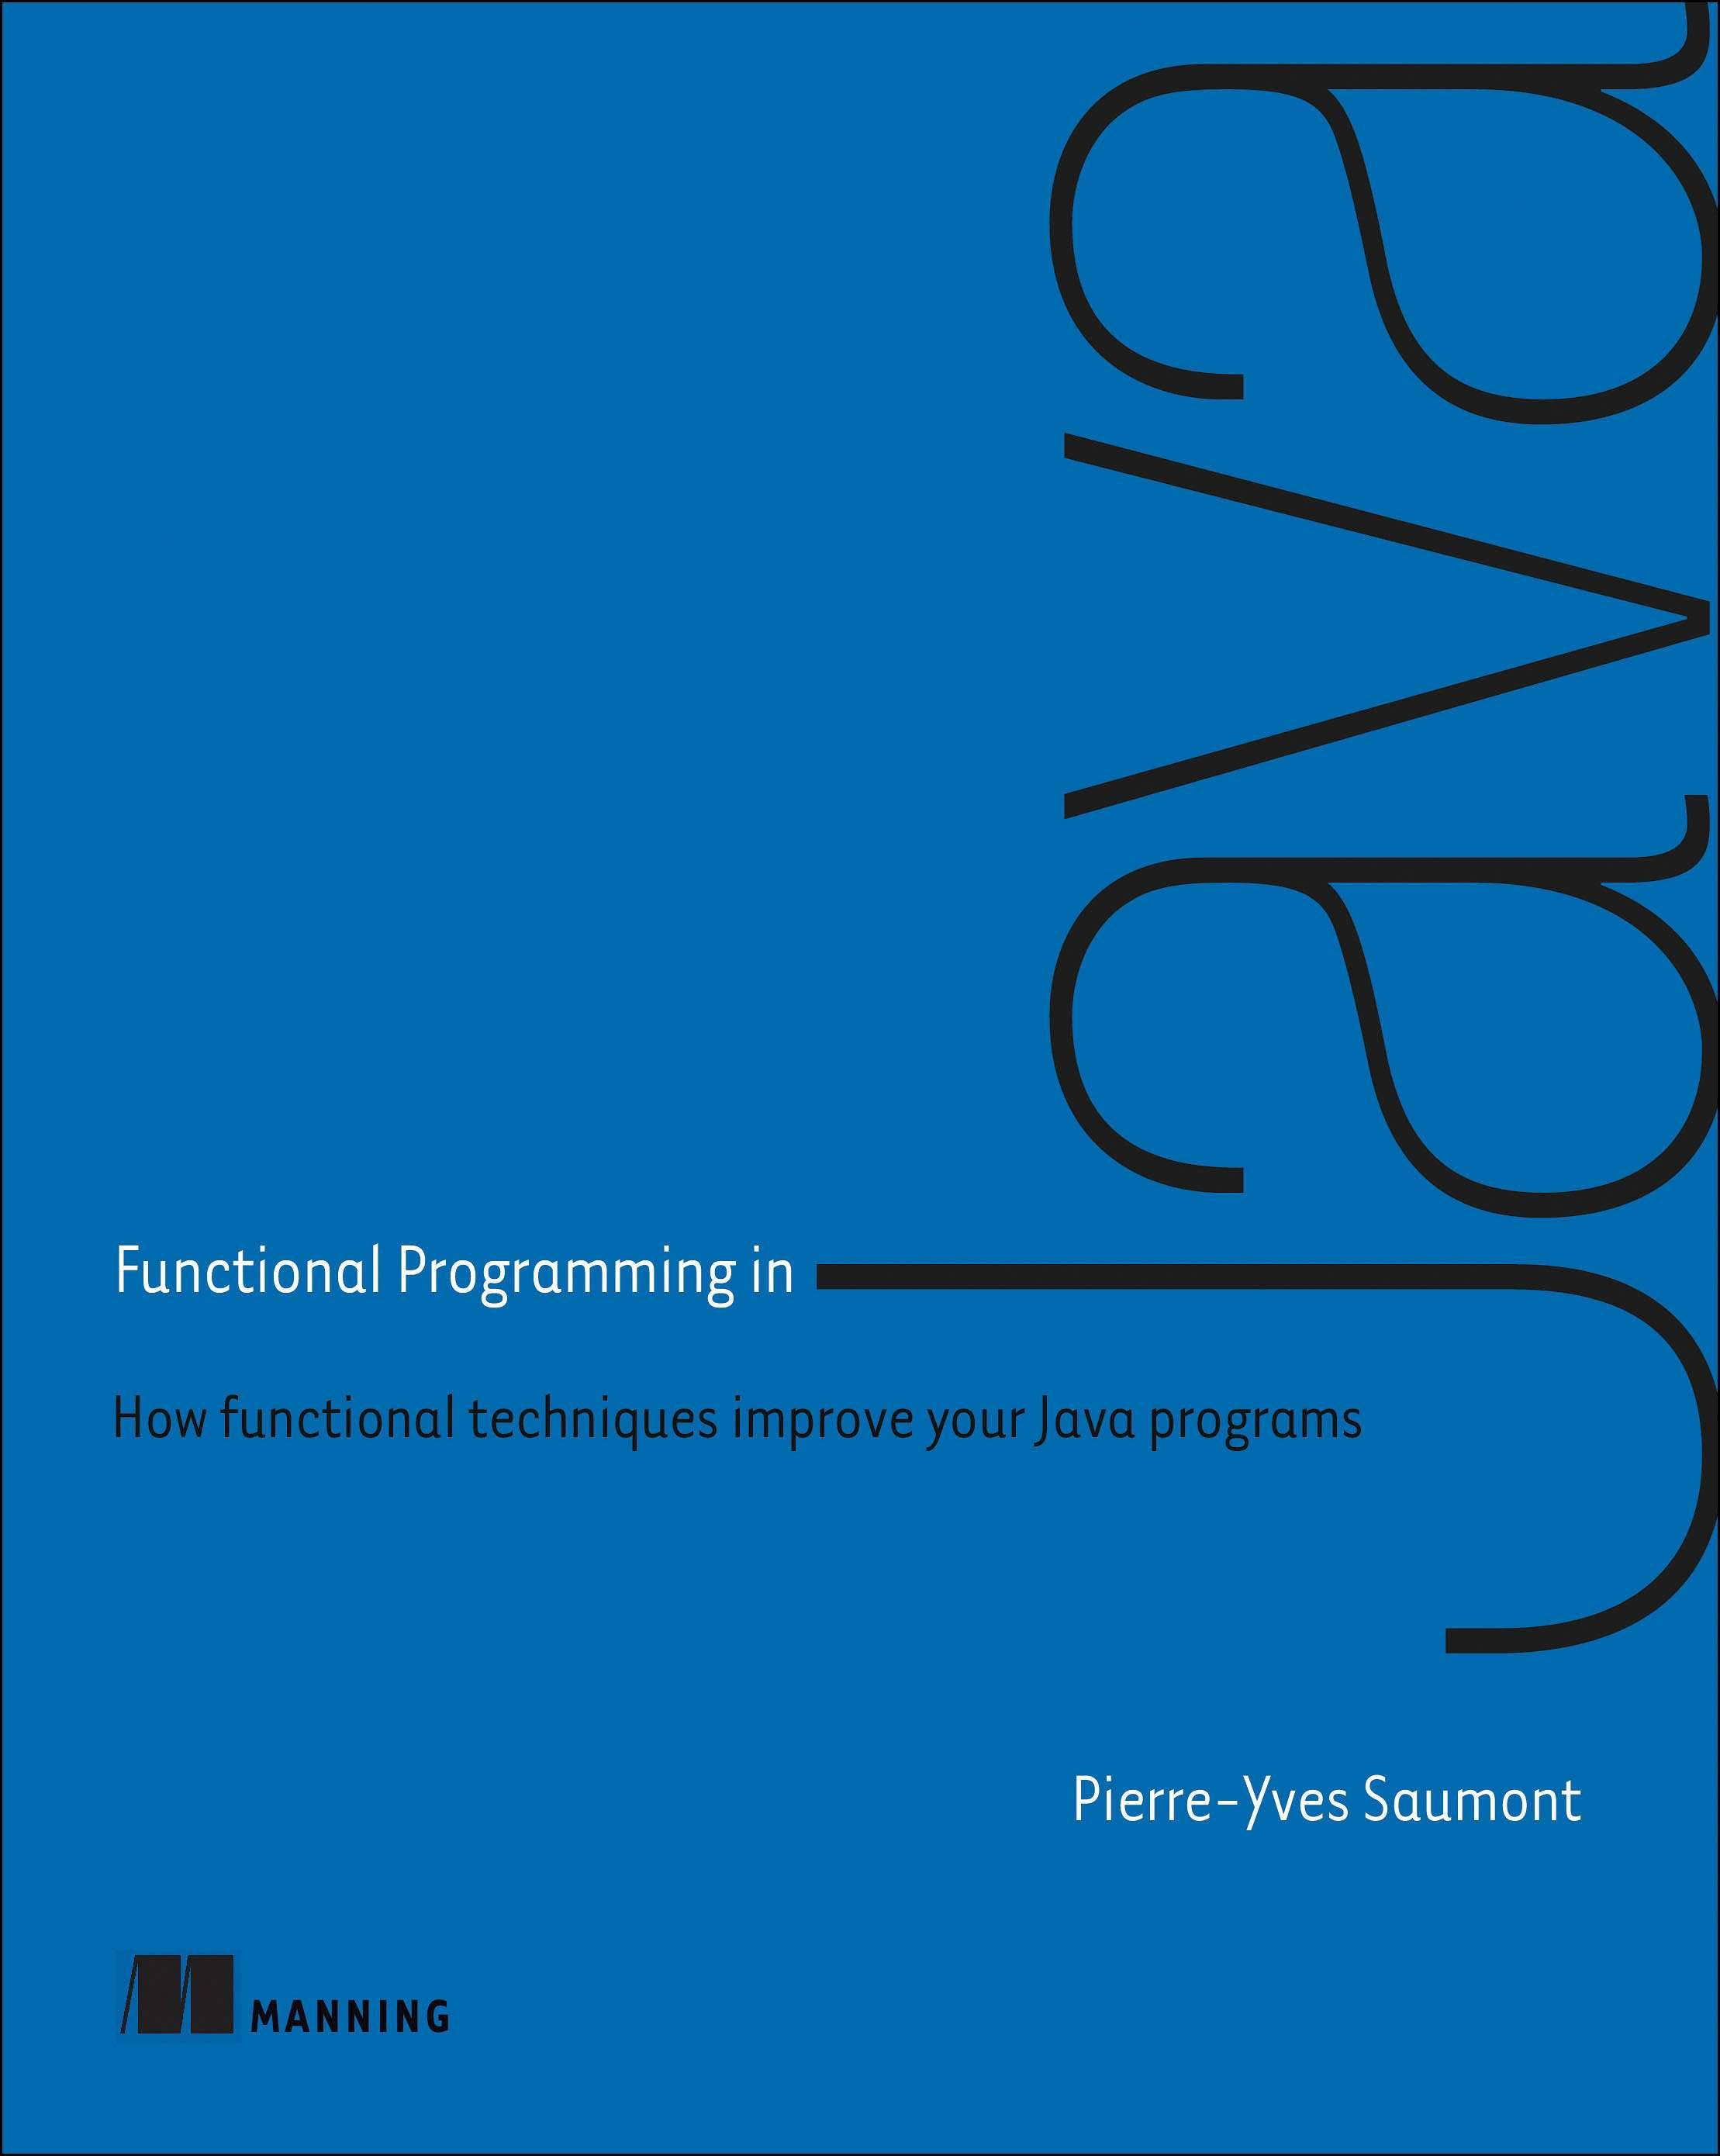 Functional Programming in Java: How functional techniques improve